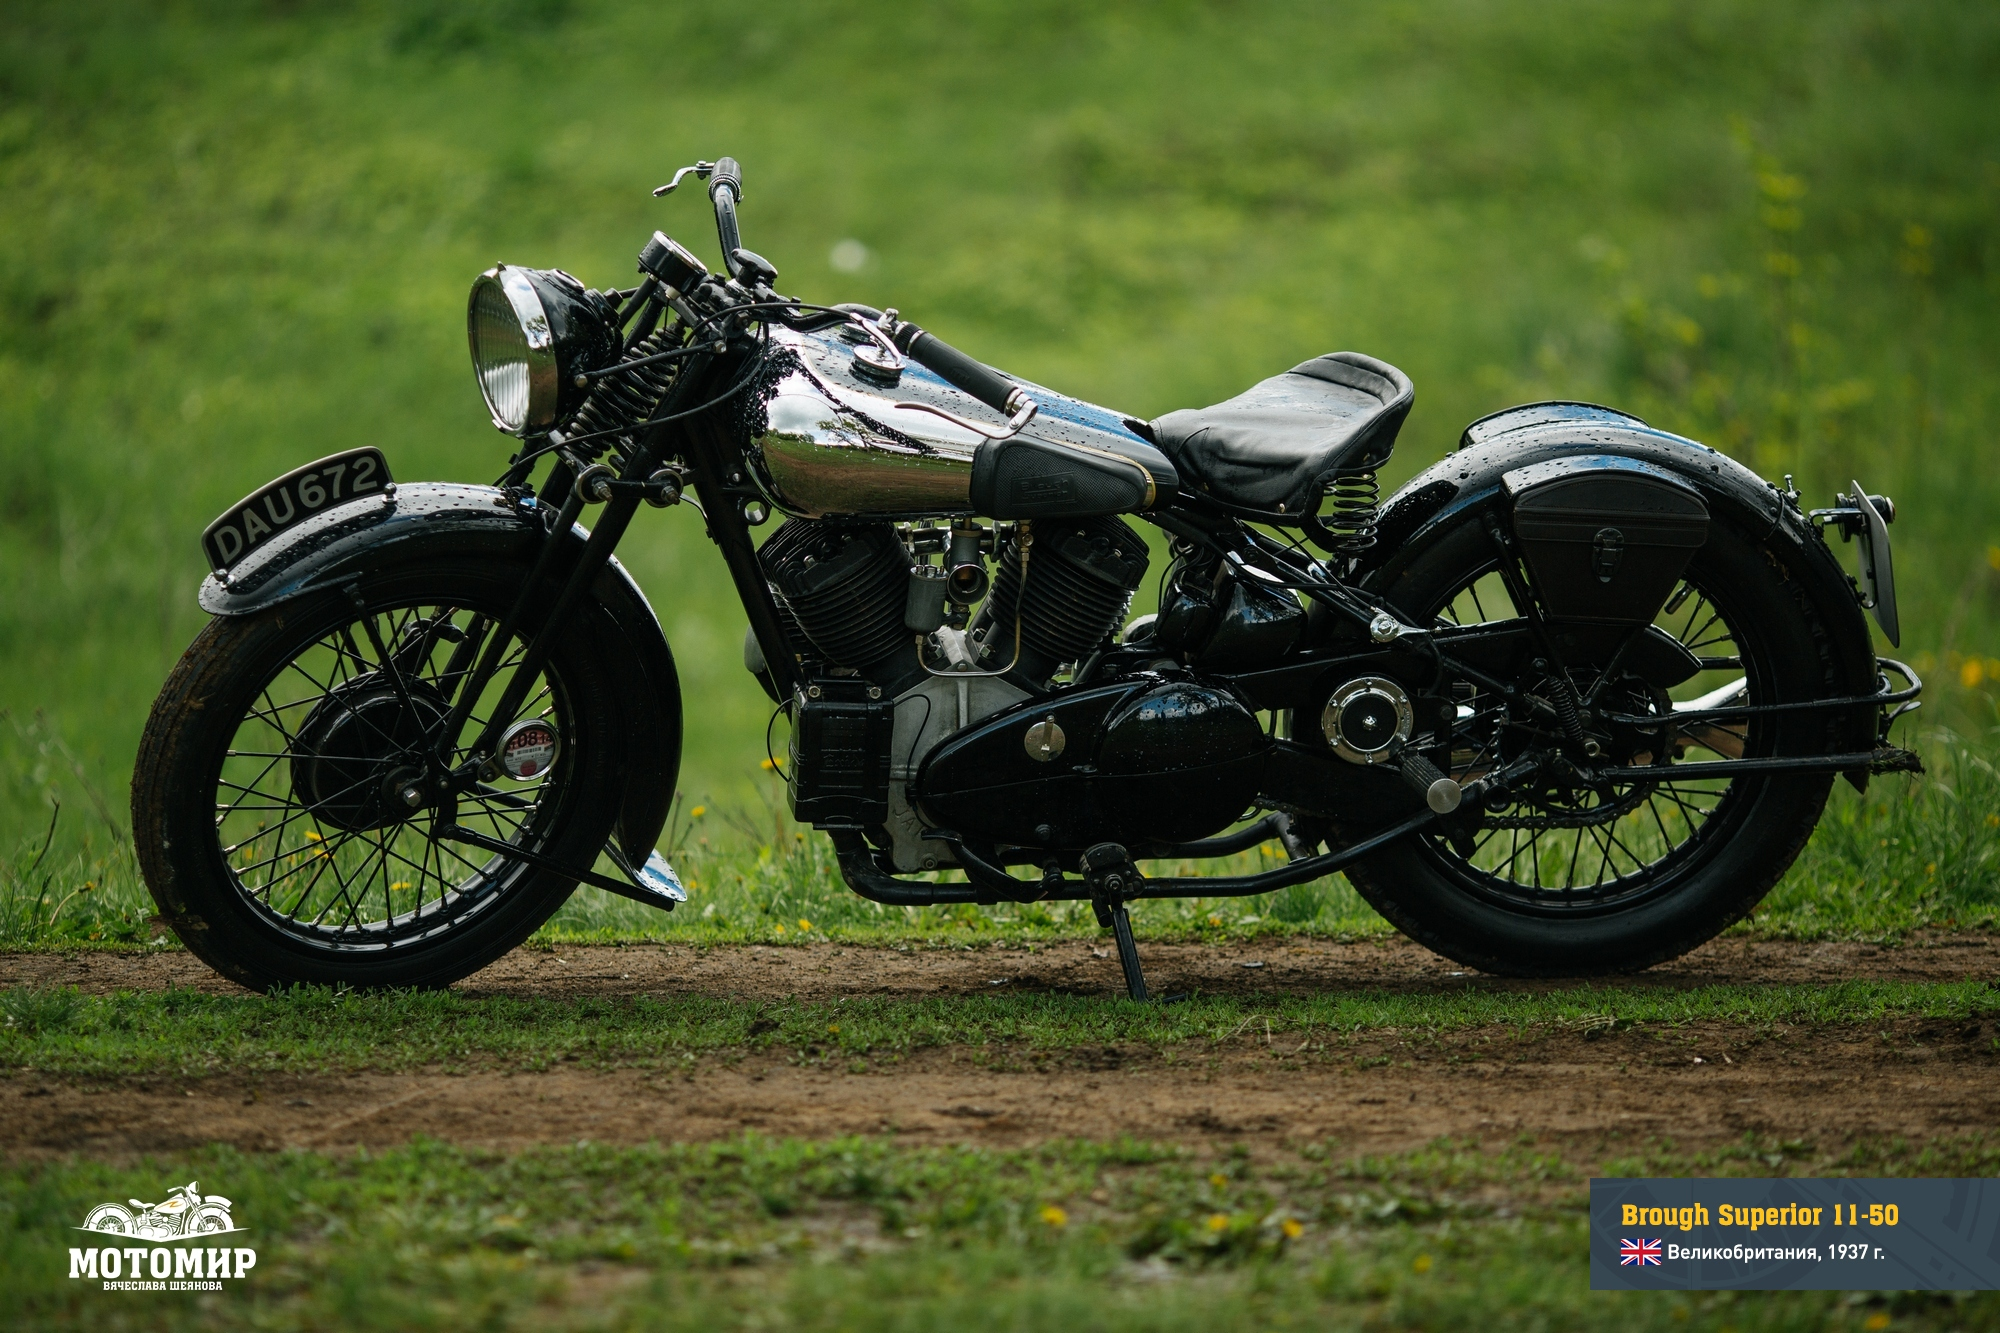 brough-superior-11-50-201509-web-09